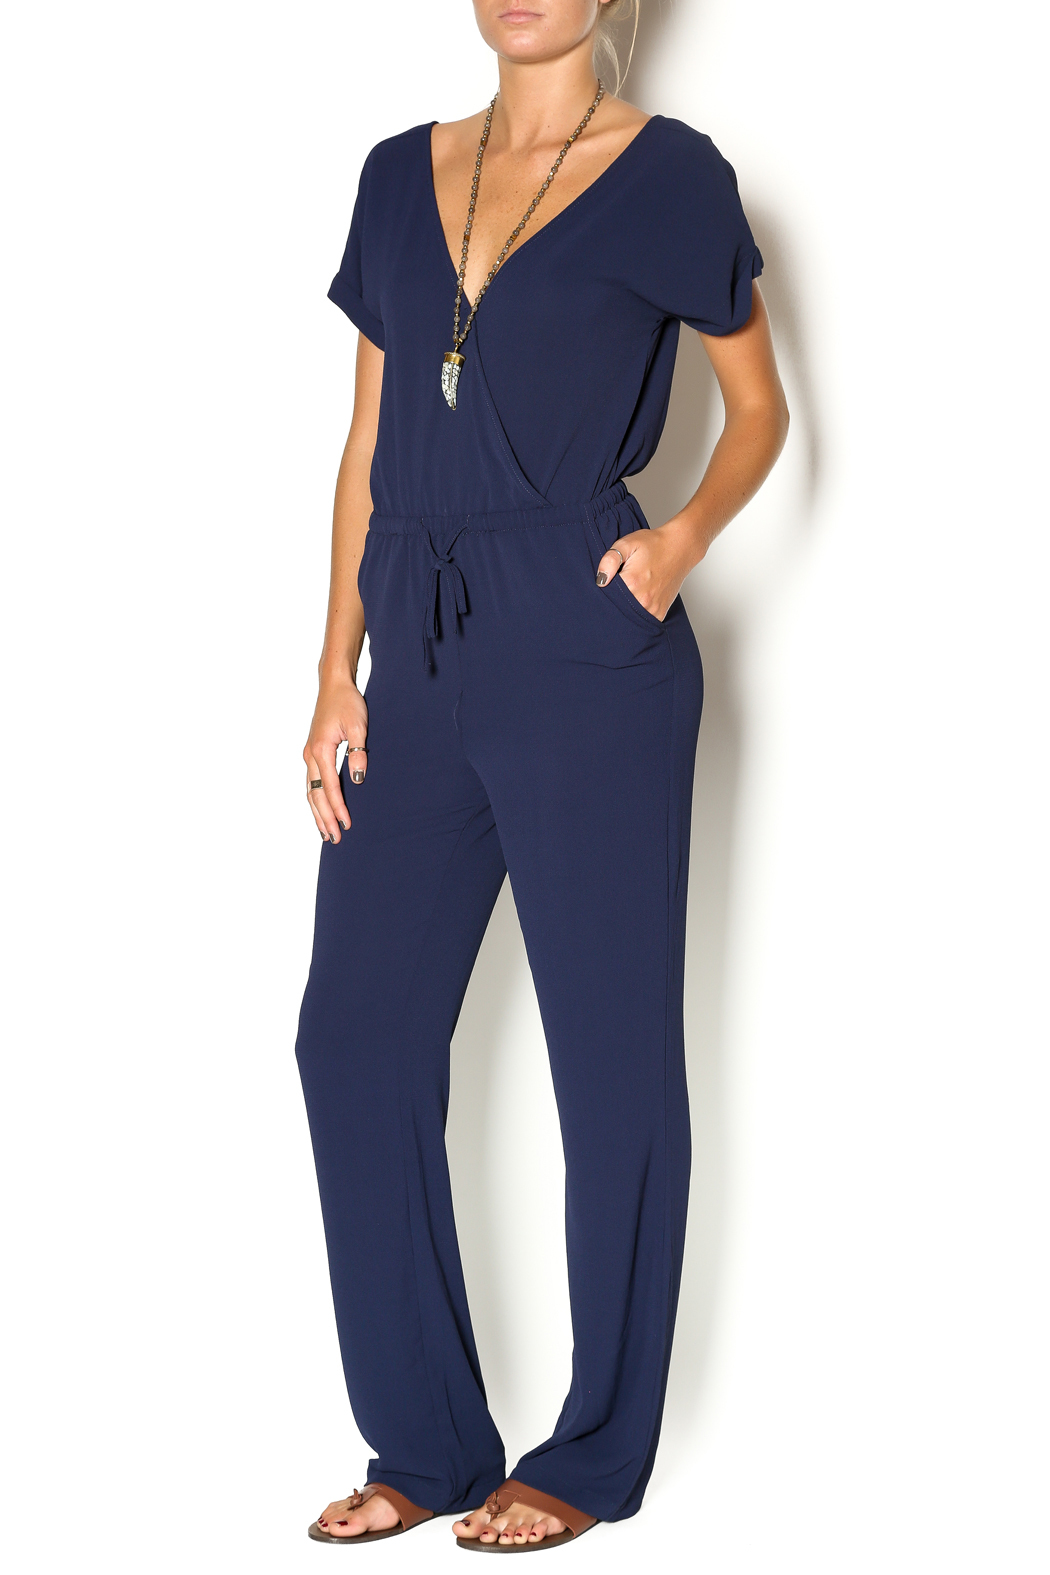 Miss Love Short Sleeve Navy Jumpsuit From California By Ooh La La